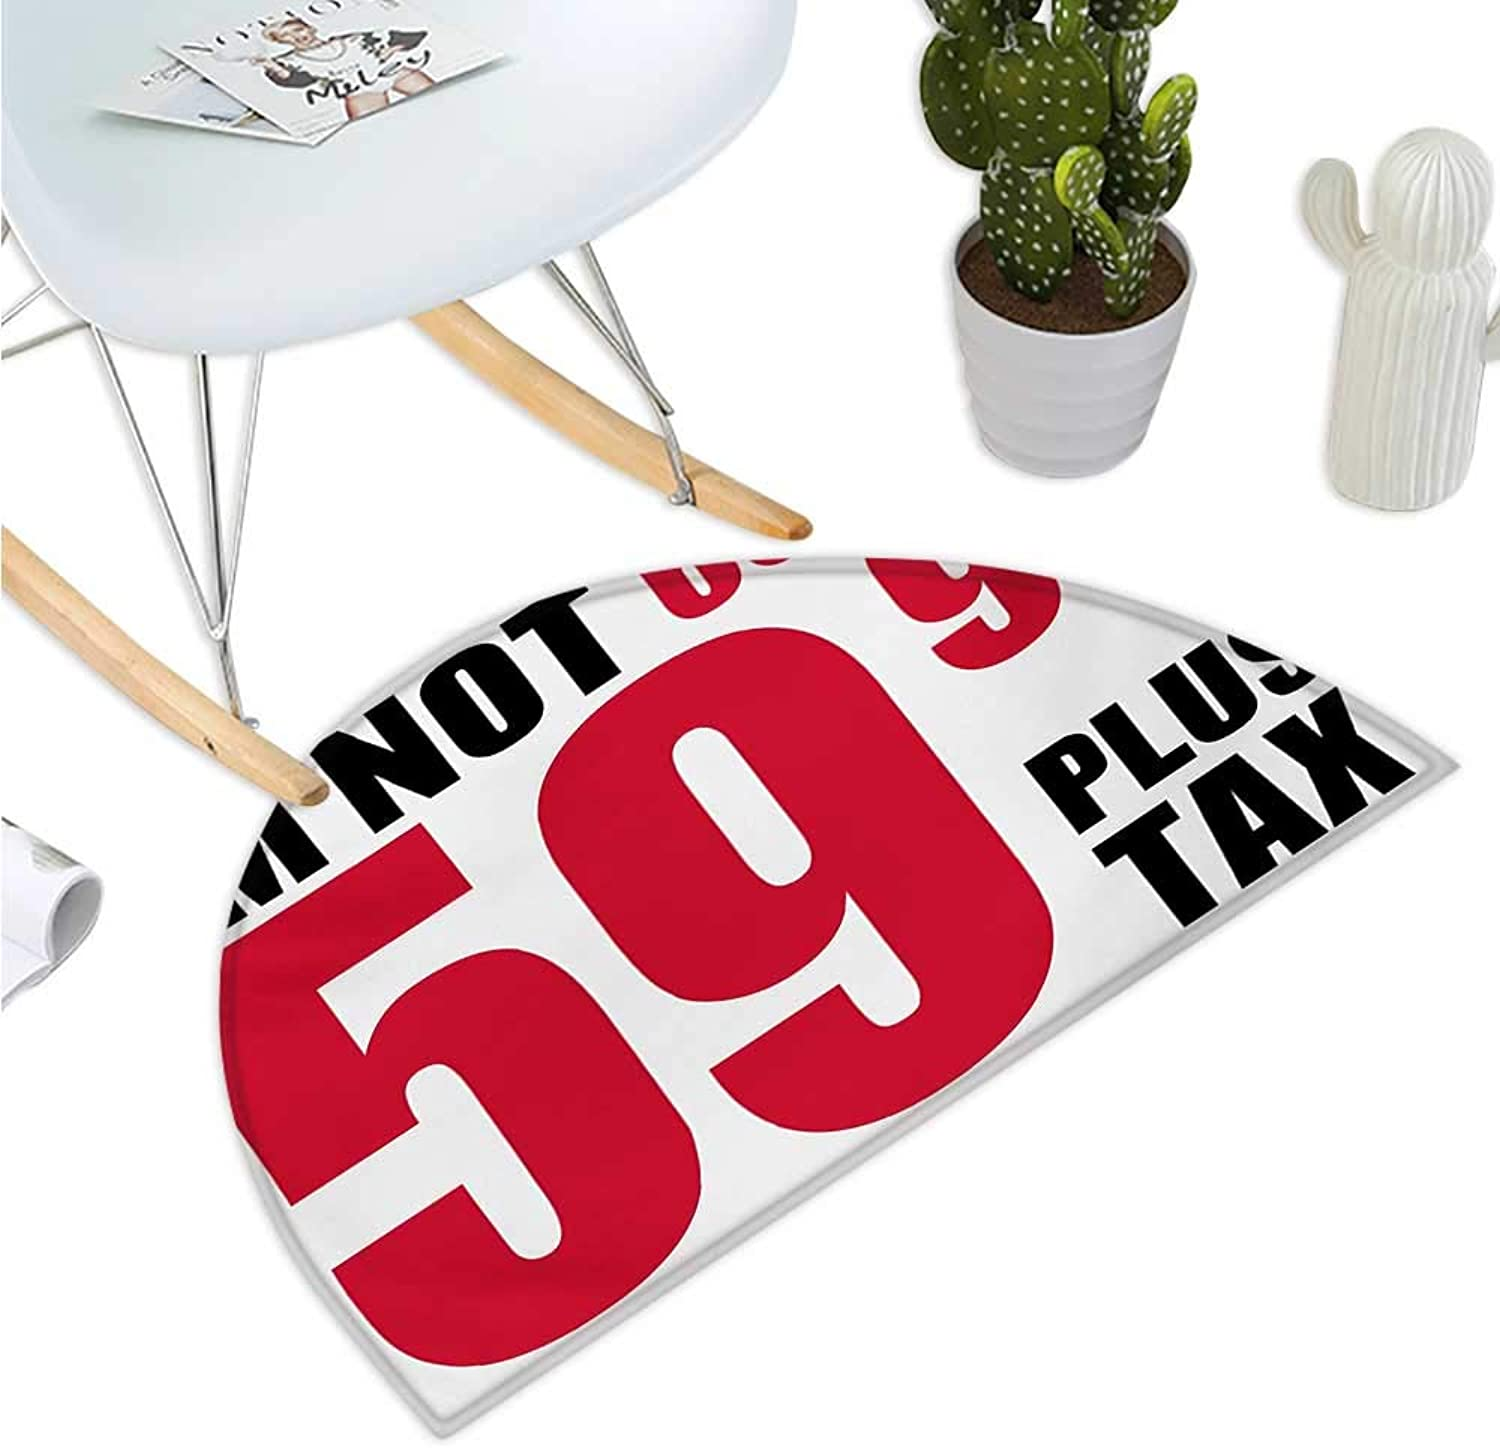 58th Birthday Semicircular Cushion Funny Humgoldus Party Theme with Birthday Quote in The Elderly Age Image Bathroom Mat H 39.3  xD 59  Red and Black